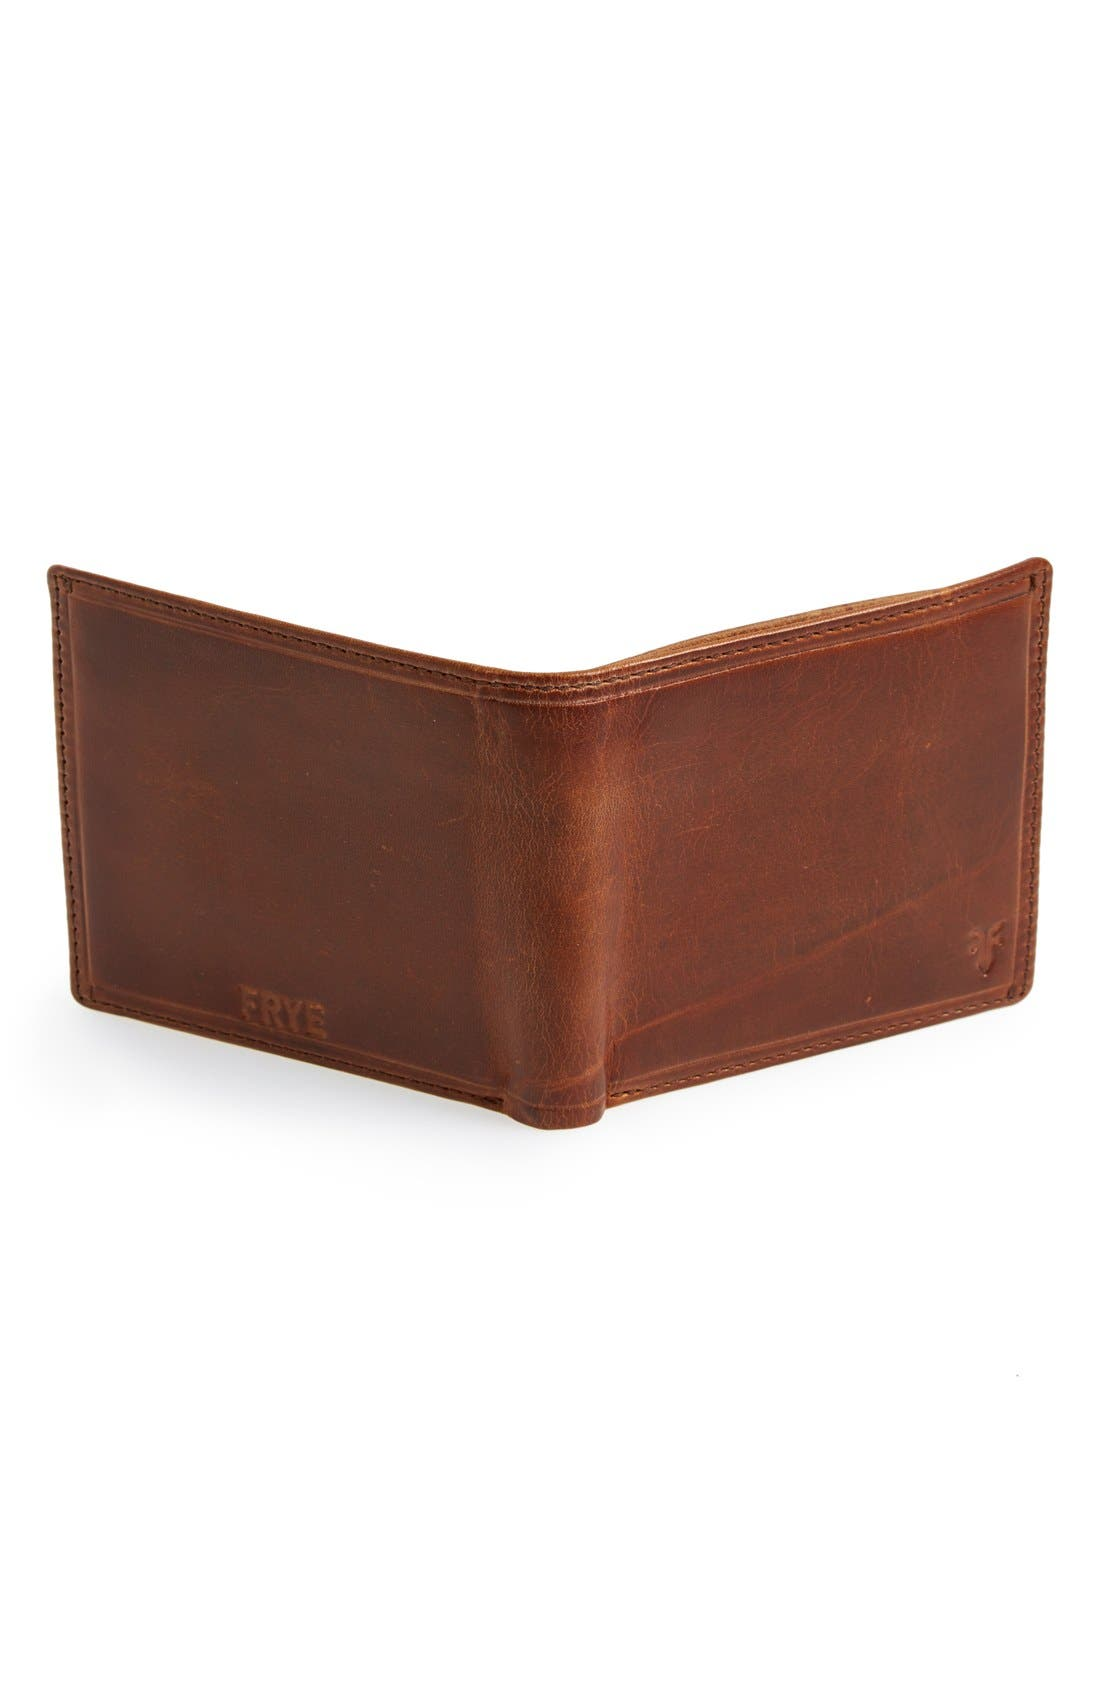 'Logan' Leather Billfold Wallet,                             Alternate thumbnail 3, color,                             Cognac